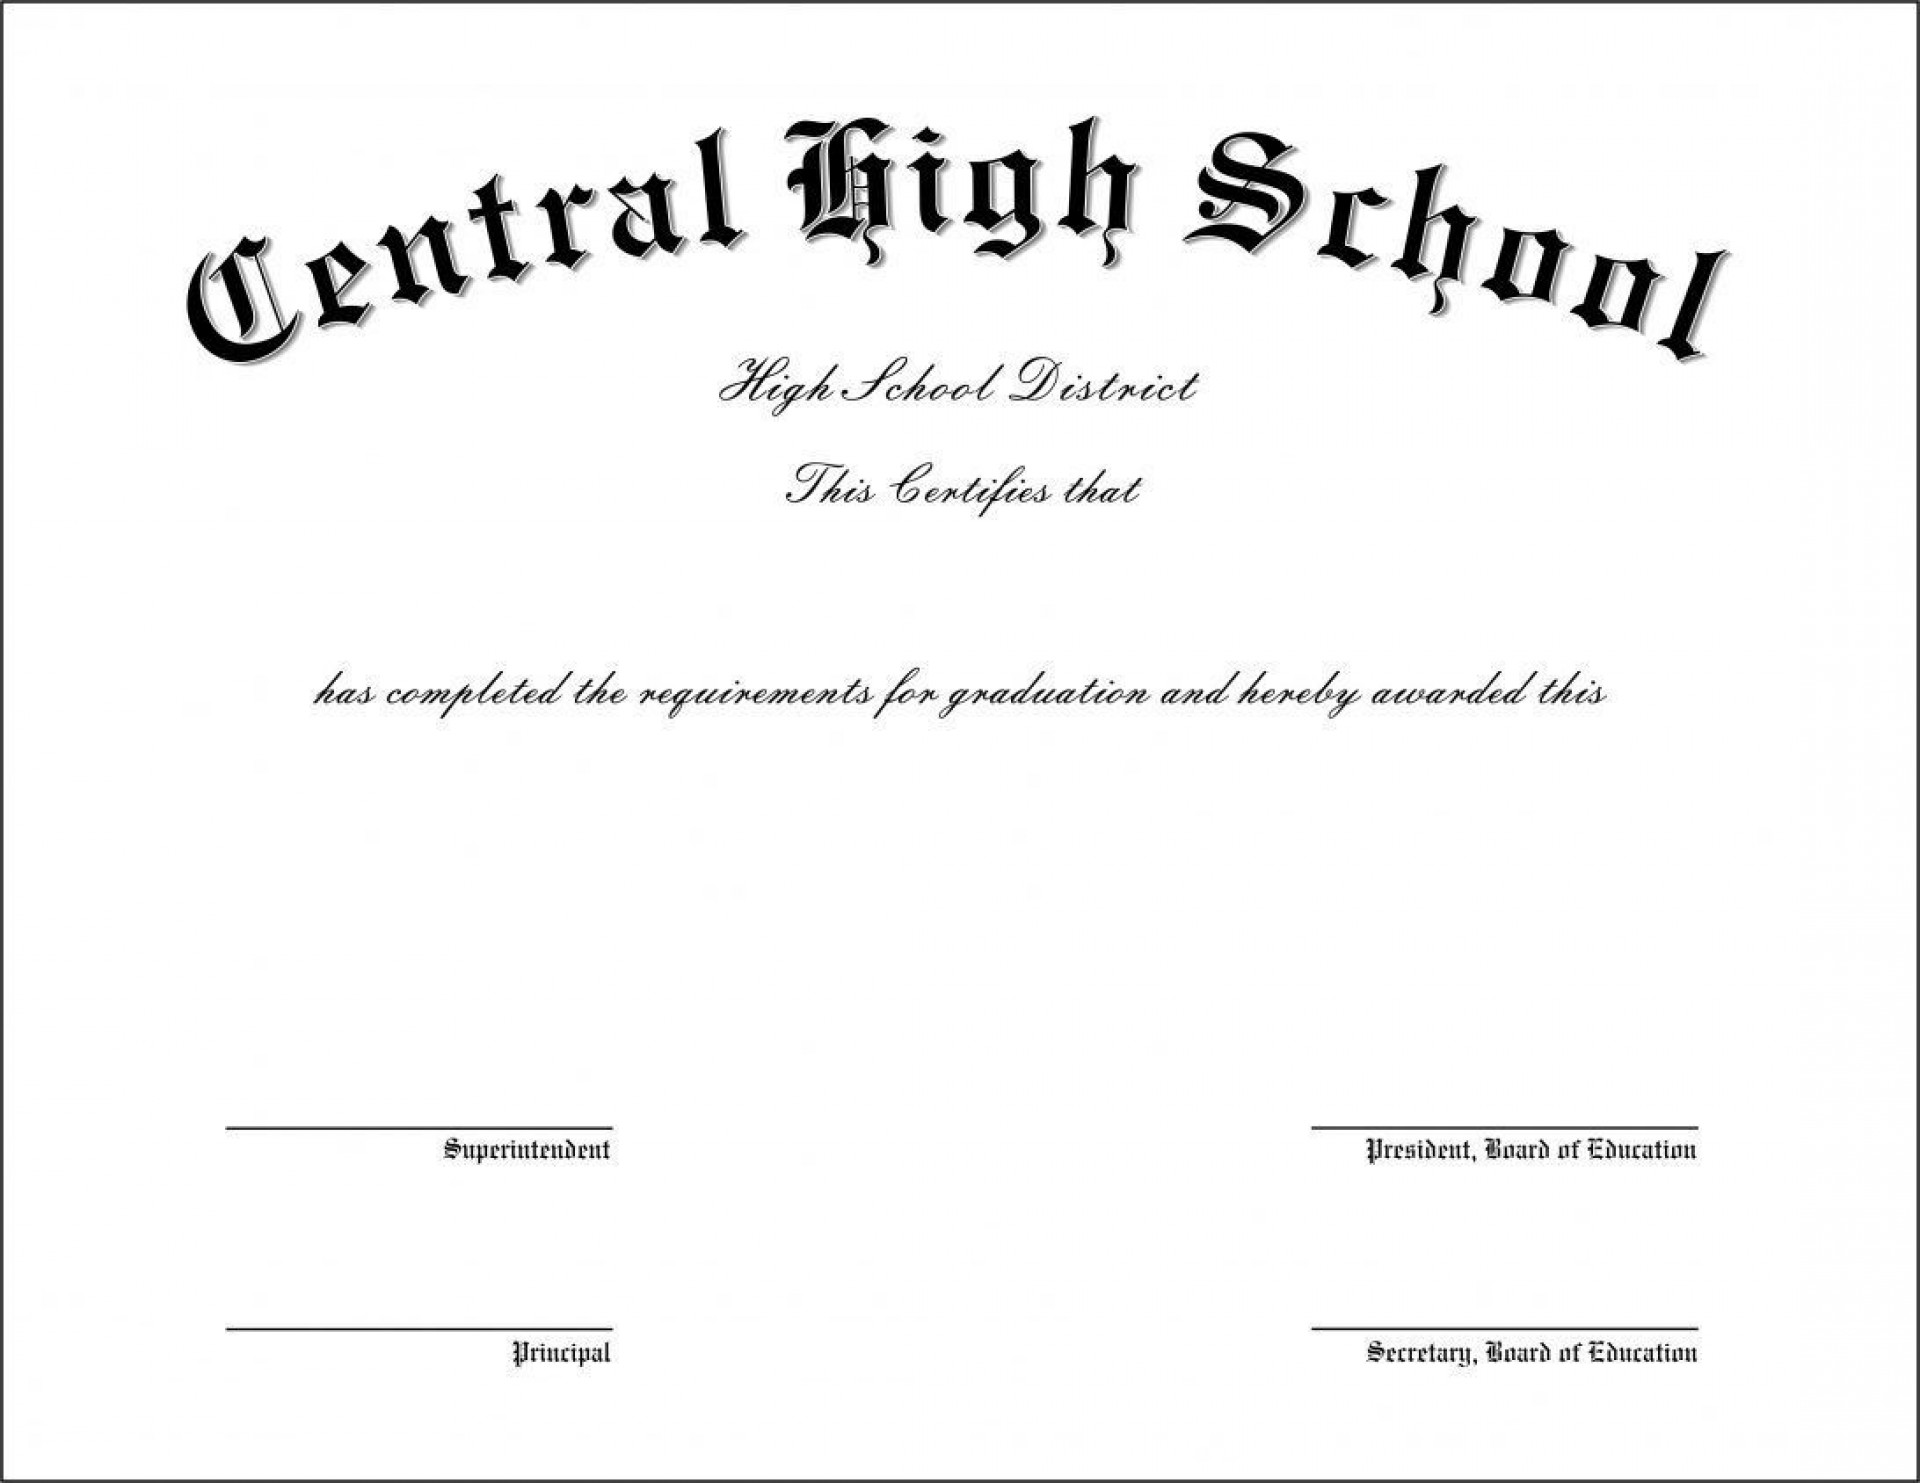 009 Frightening Free Printable High School Diploma Template Resolution  With Seal1920